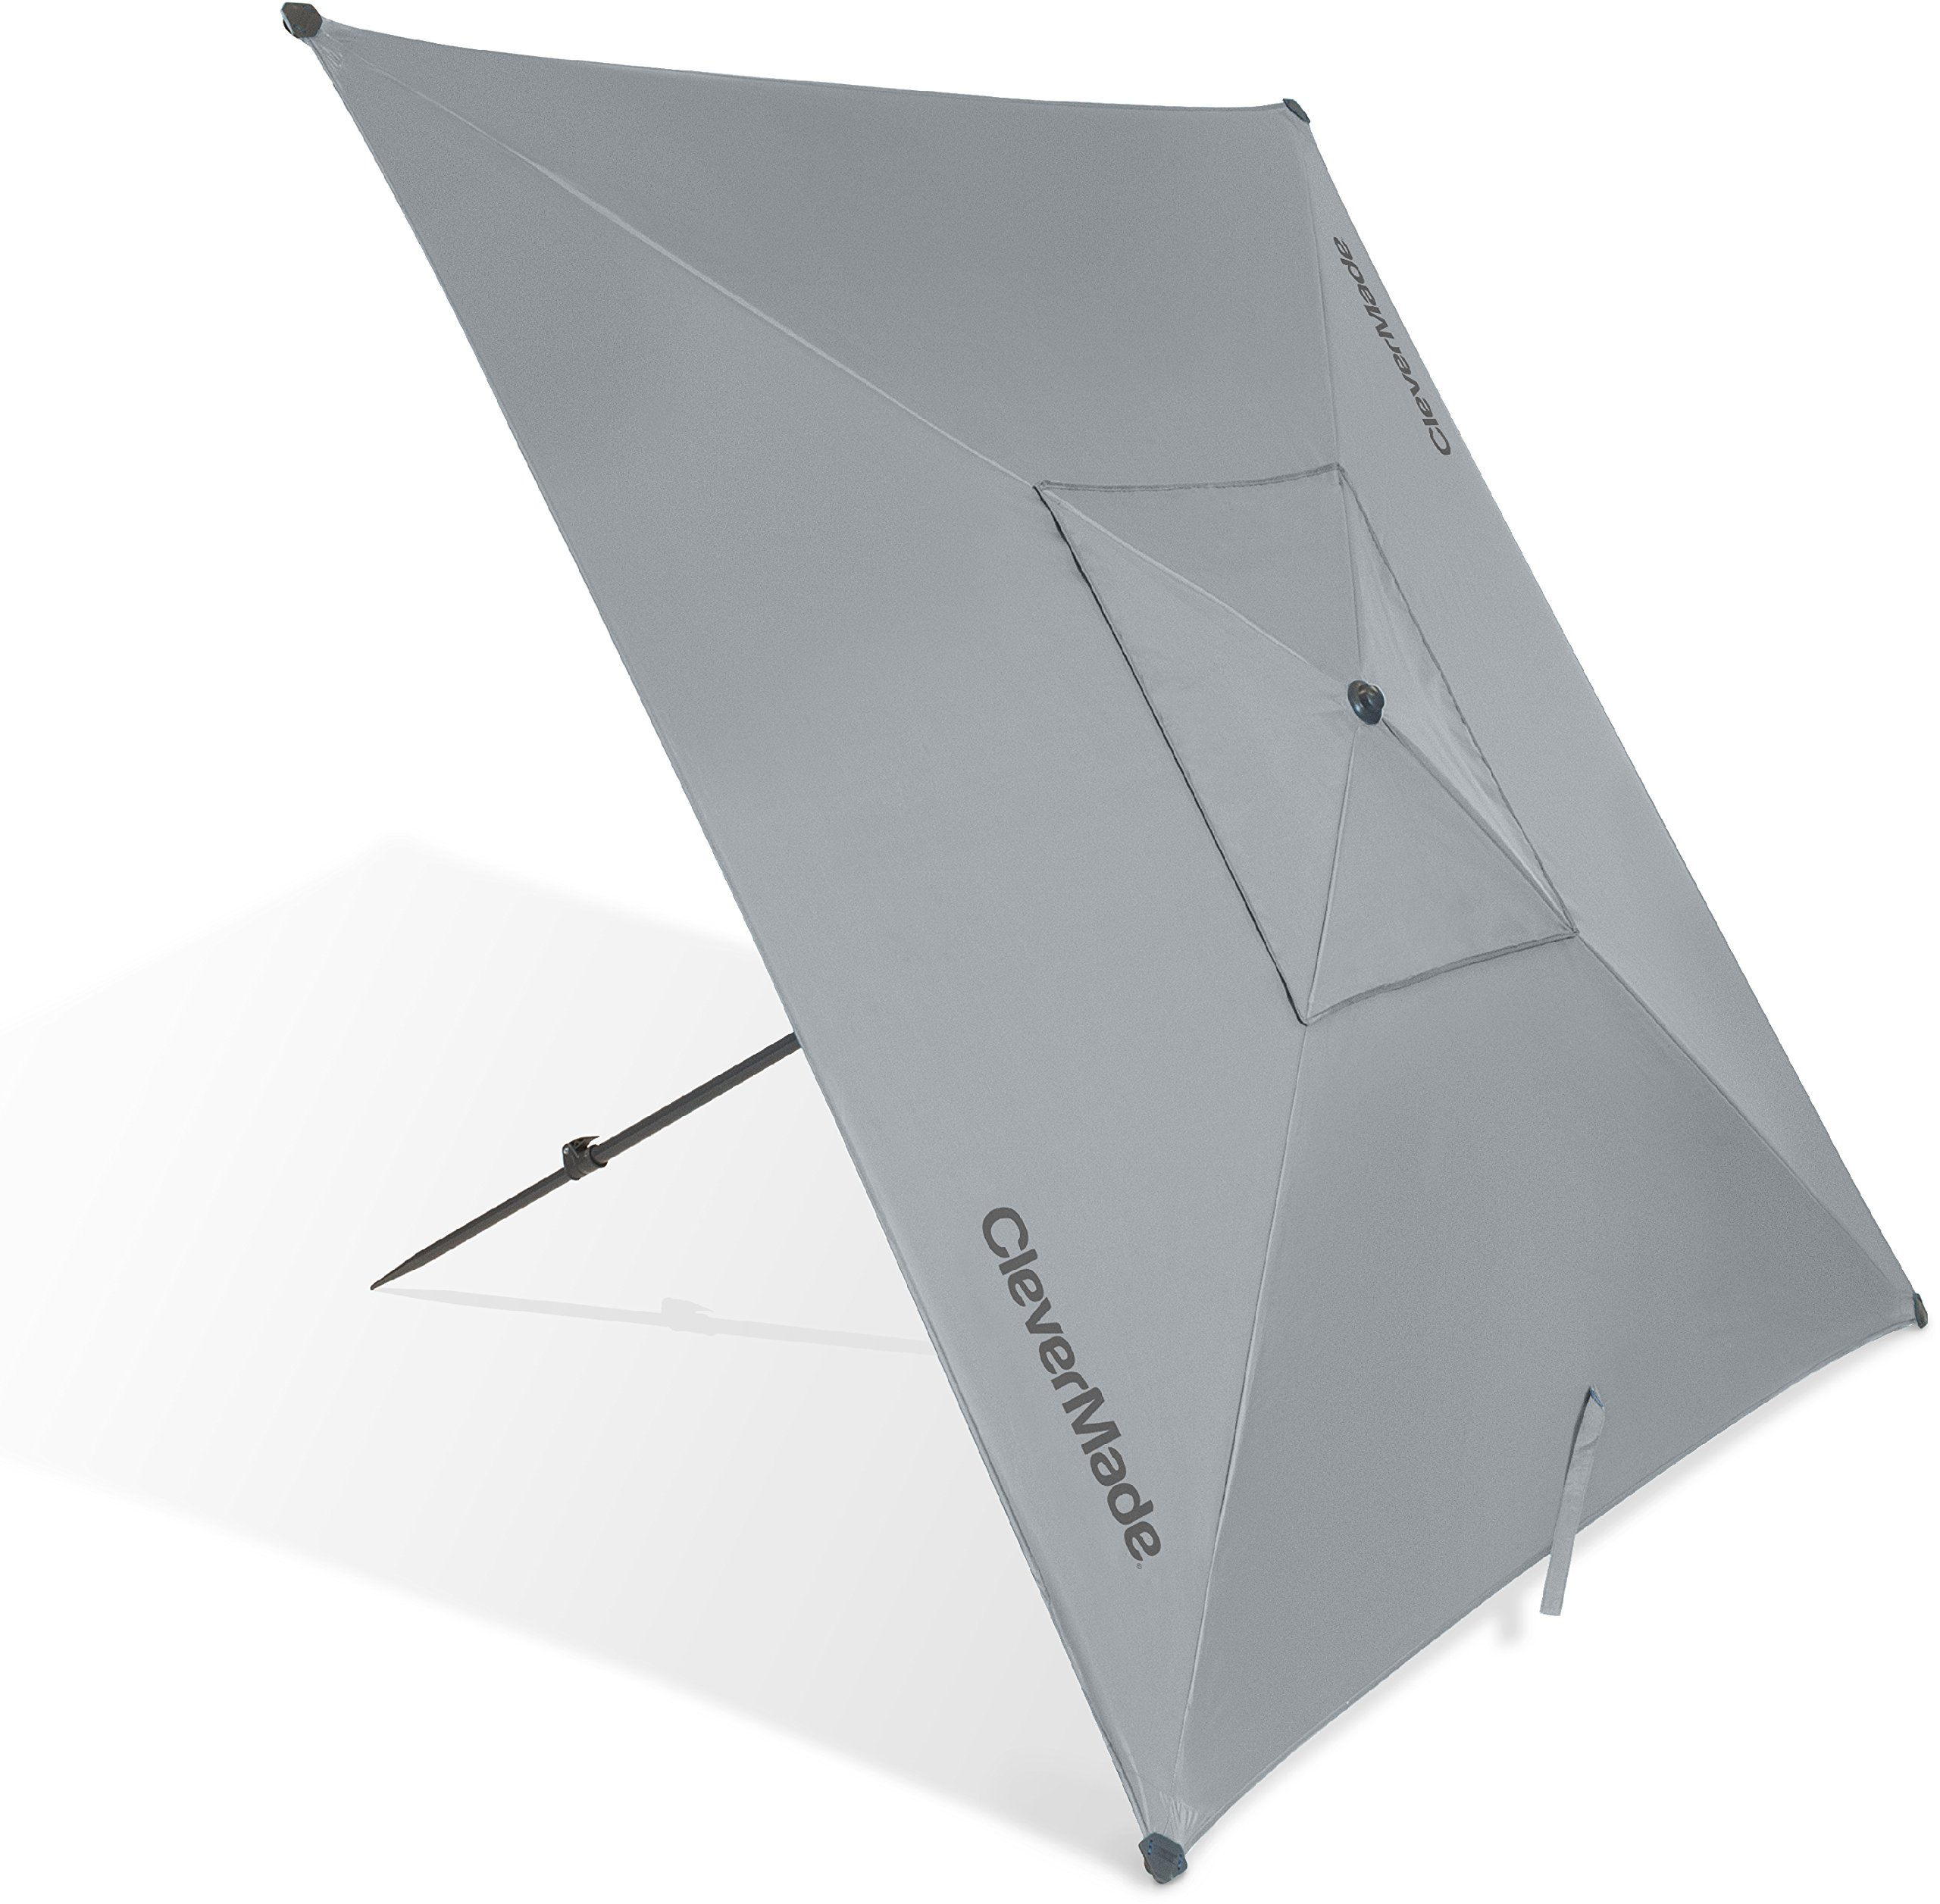 CleverMade QuadraBrella - Portable 5' UPF 50 Outdoor Beach Umbrella for Sun Shade - Includes Pivot Hammer, Tie Down Cords, and Ground Stakes, Grey